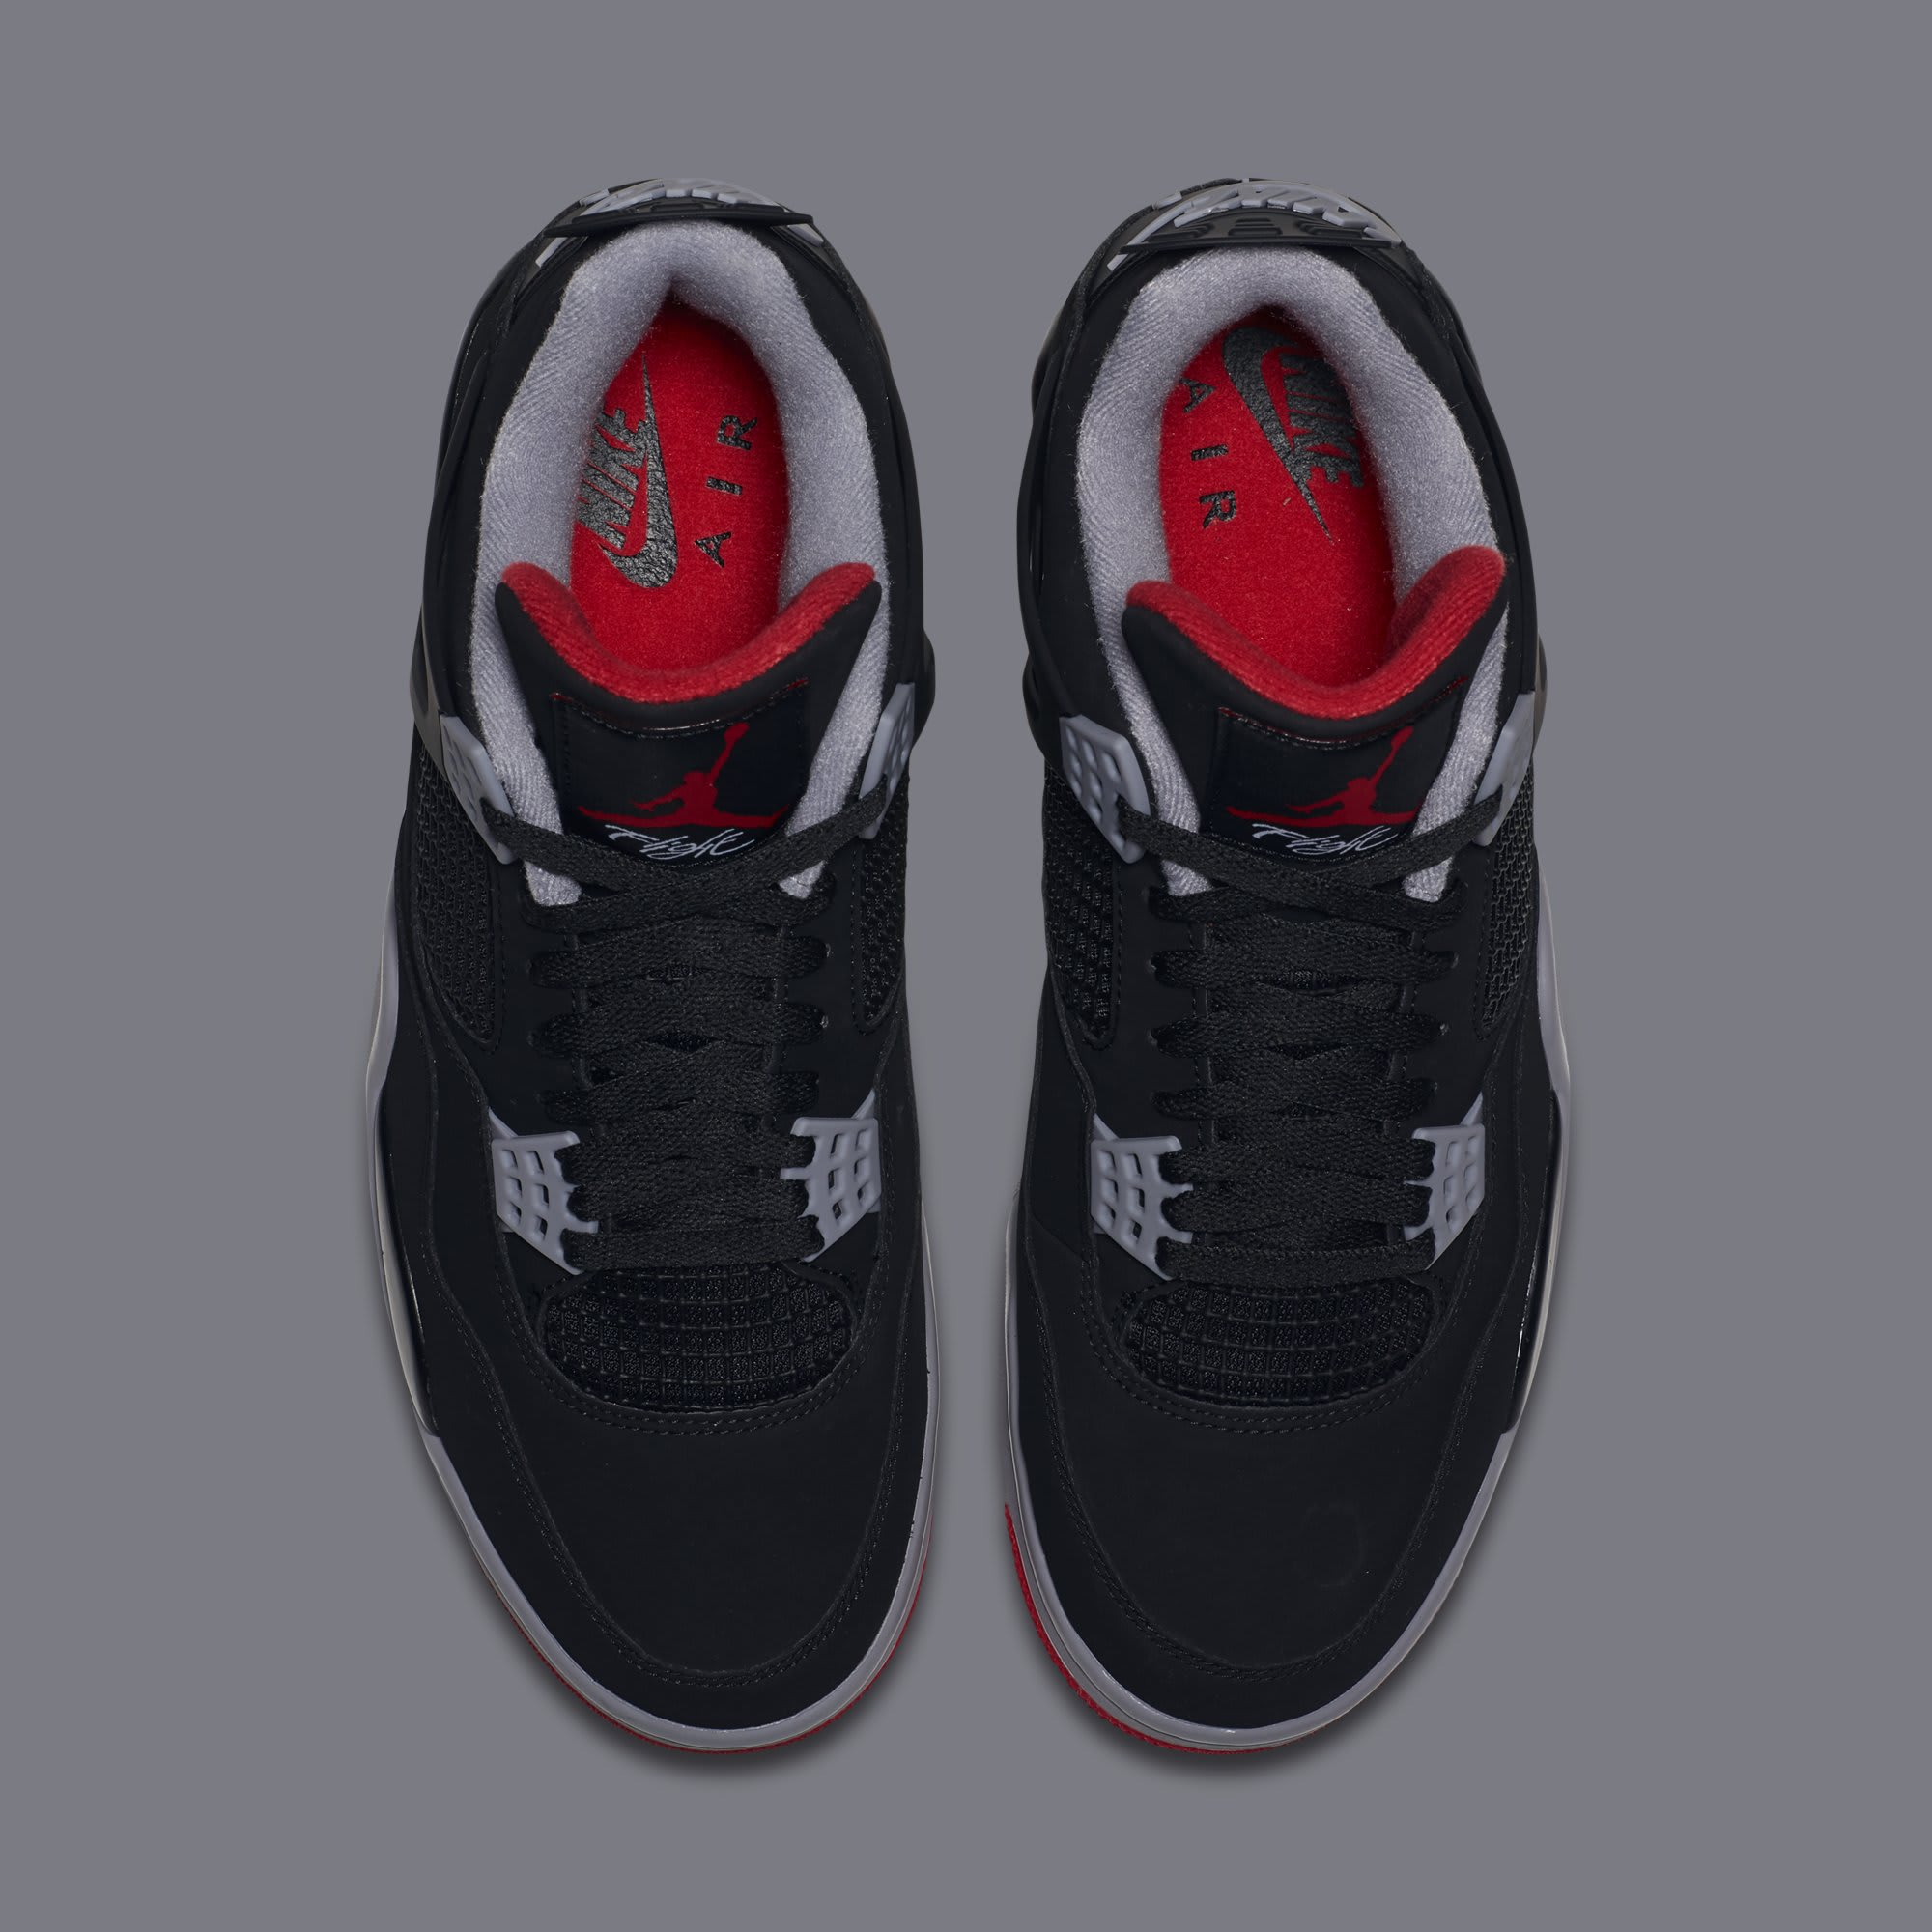 half off a9f26 507b5 Image via Nike Air Jordan 4  Bred  308497-060 (Top)